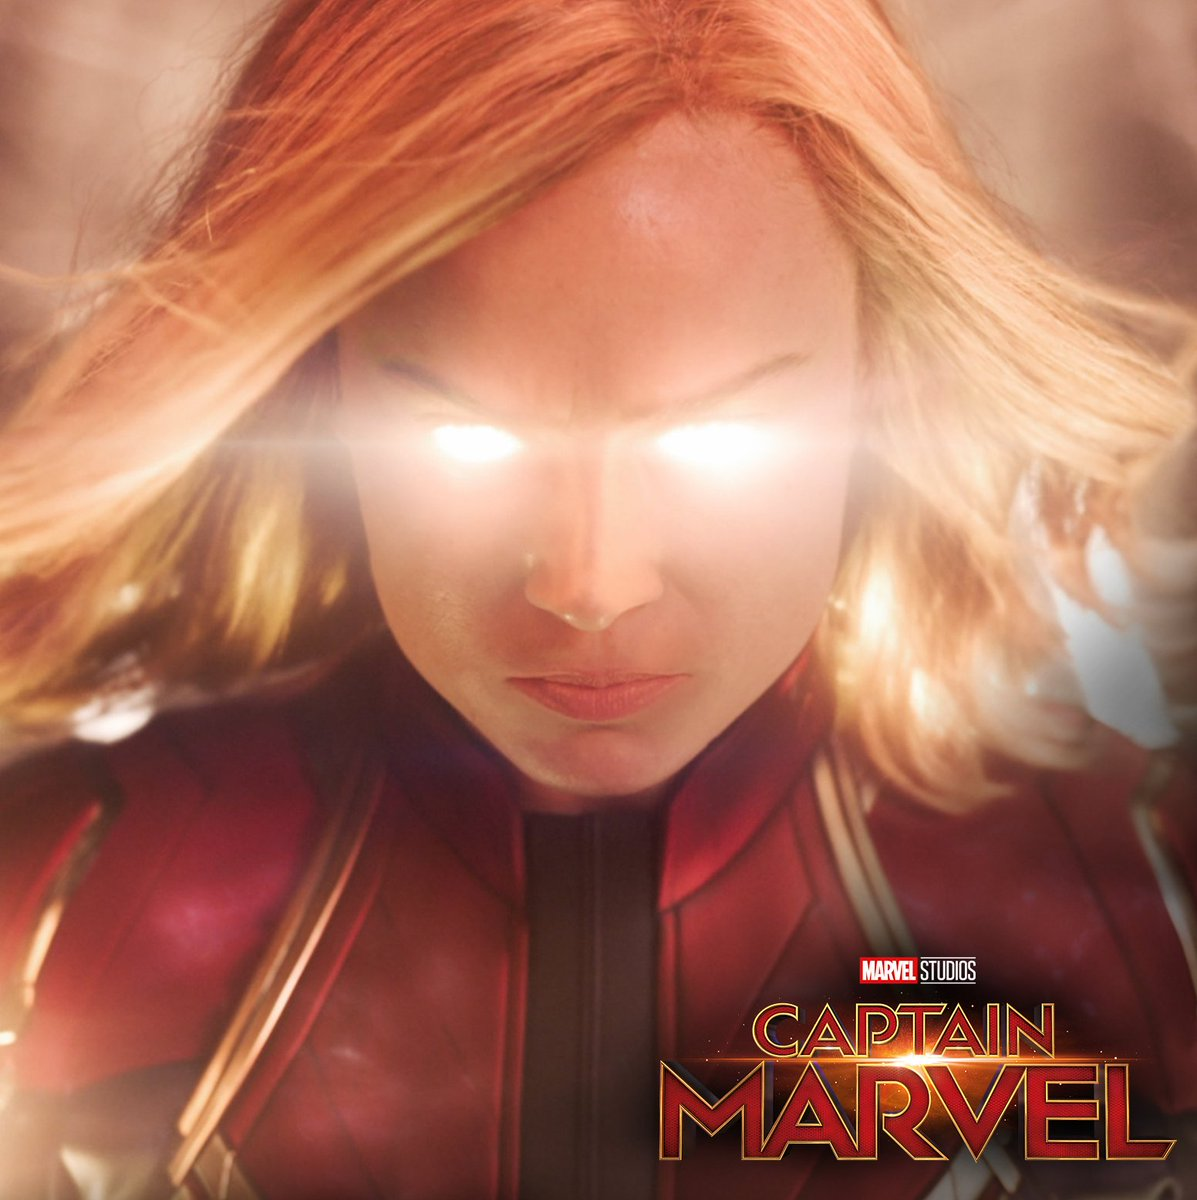 In one month, get ready to marvel. Get tickets to Marvel Studios' #CaptainMarvel now: http://www.Fandango.com/CaptainMarvel